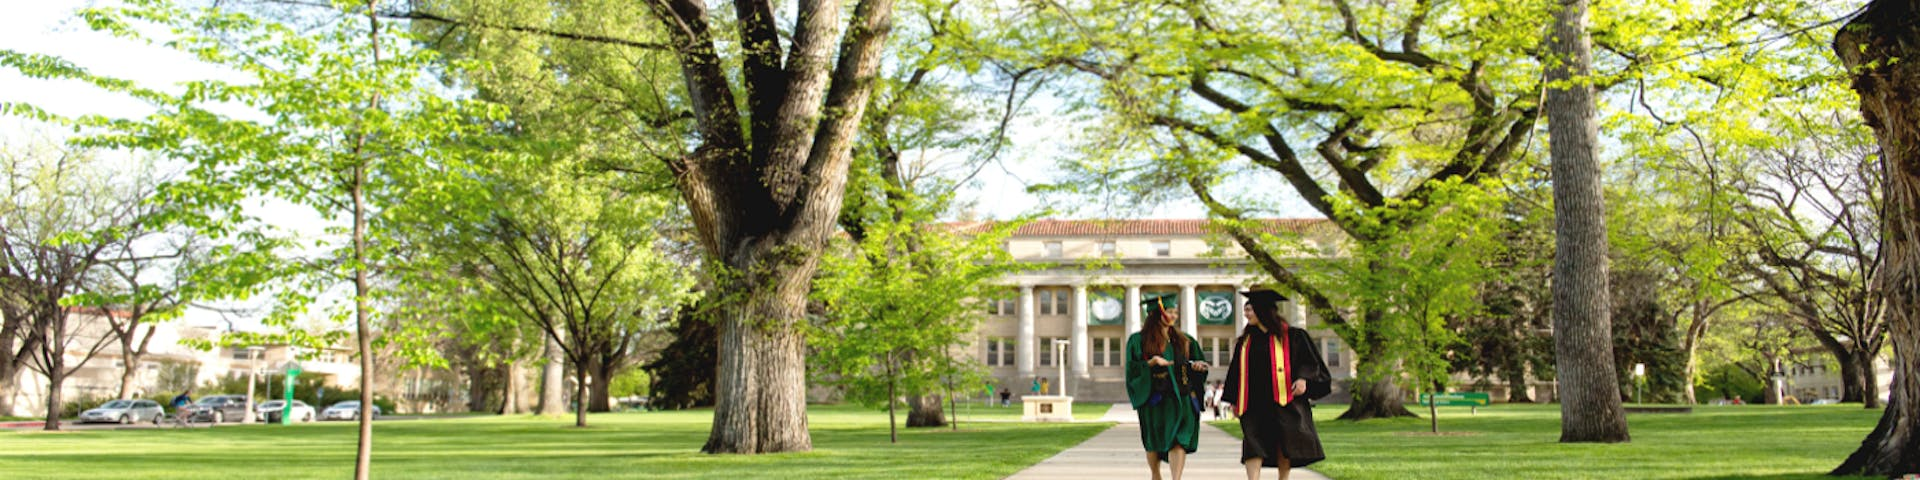 Colorado State University - Fort Collins - United States